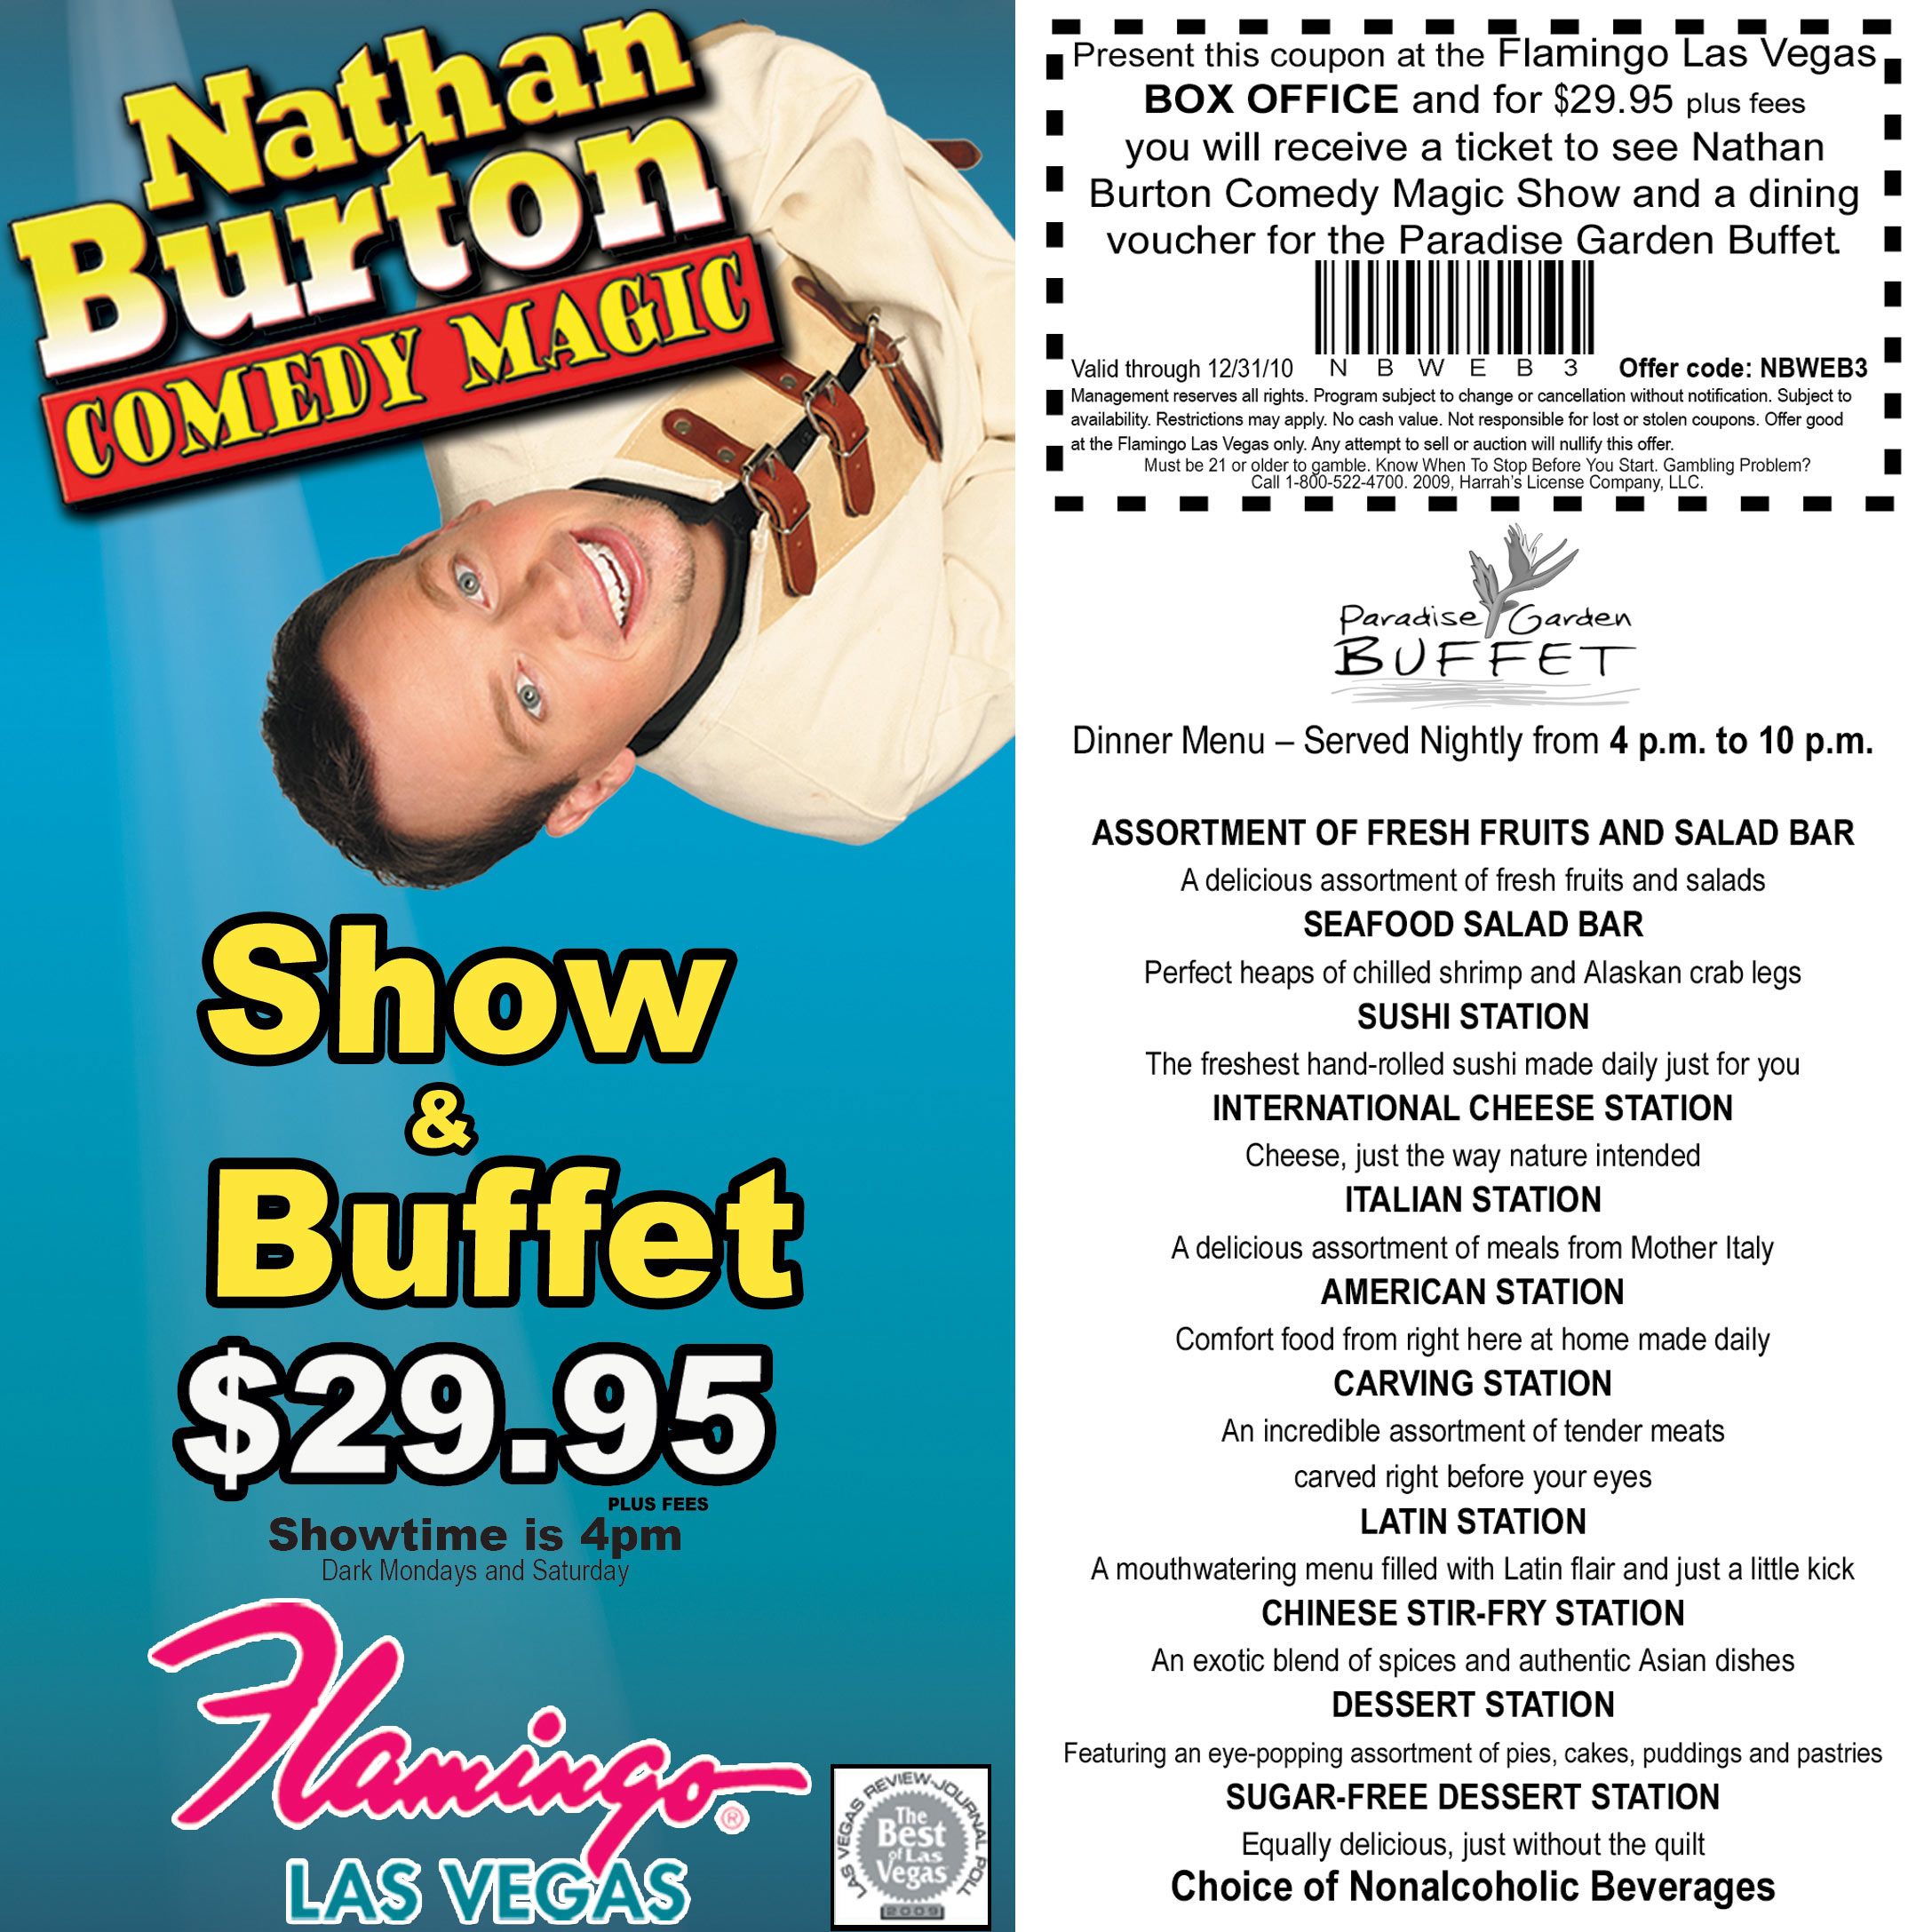 Las vegas discount shows and coupons